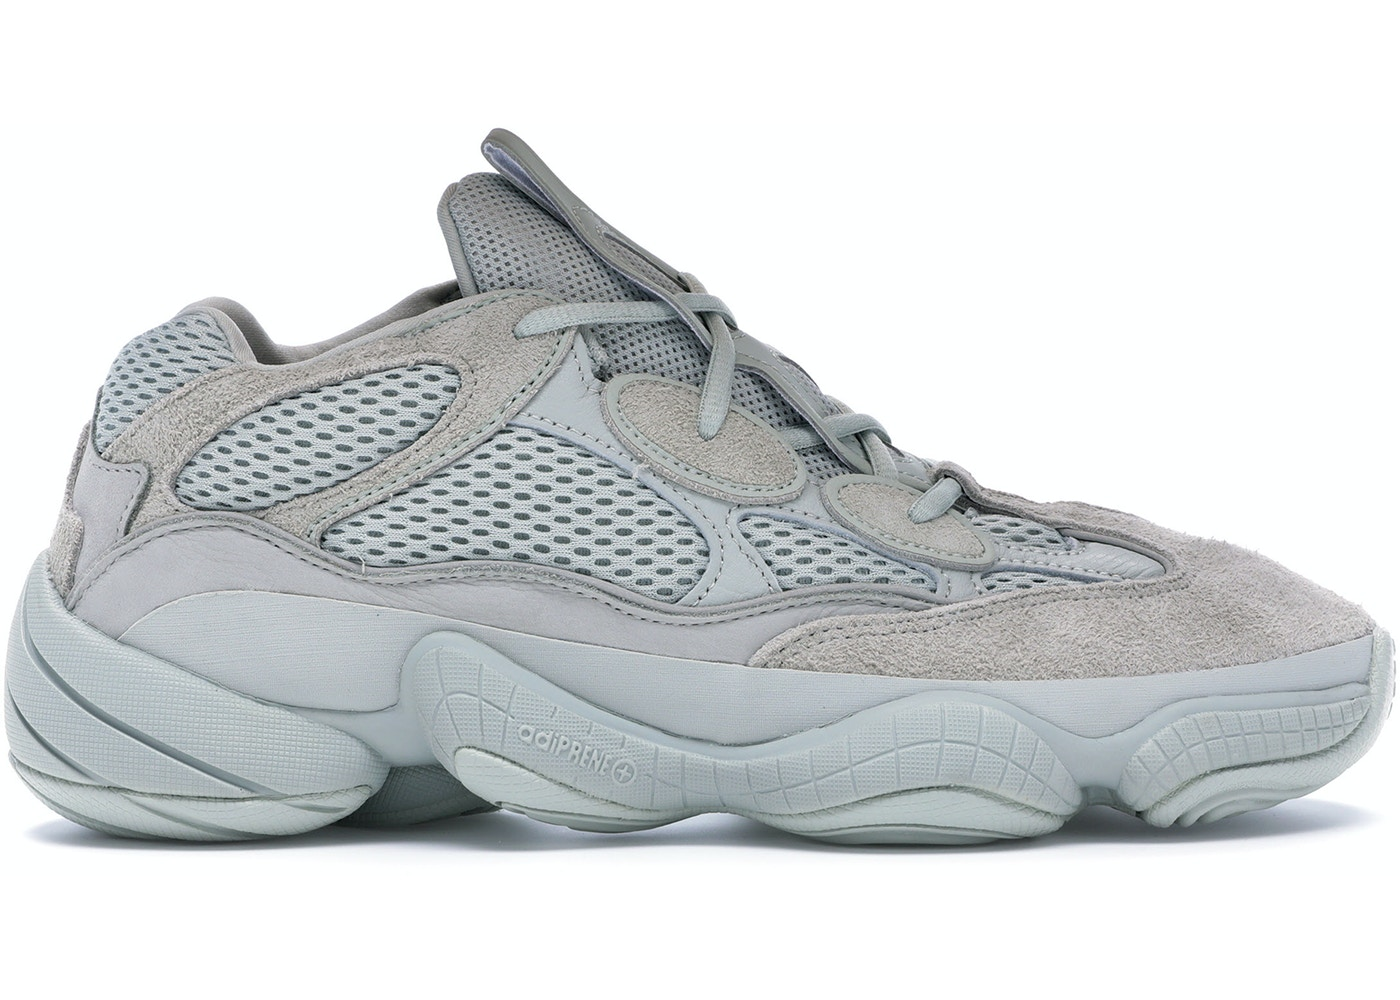 best website 435e7 6c4d5 adidas Yeezy 500 Salt